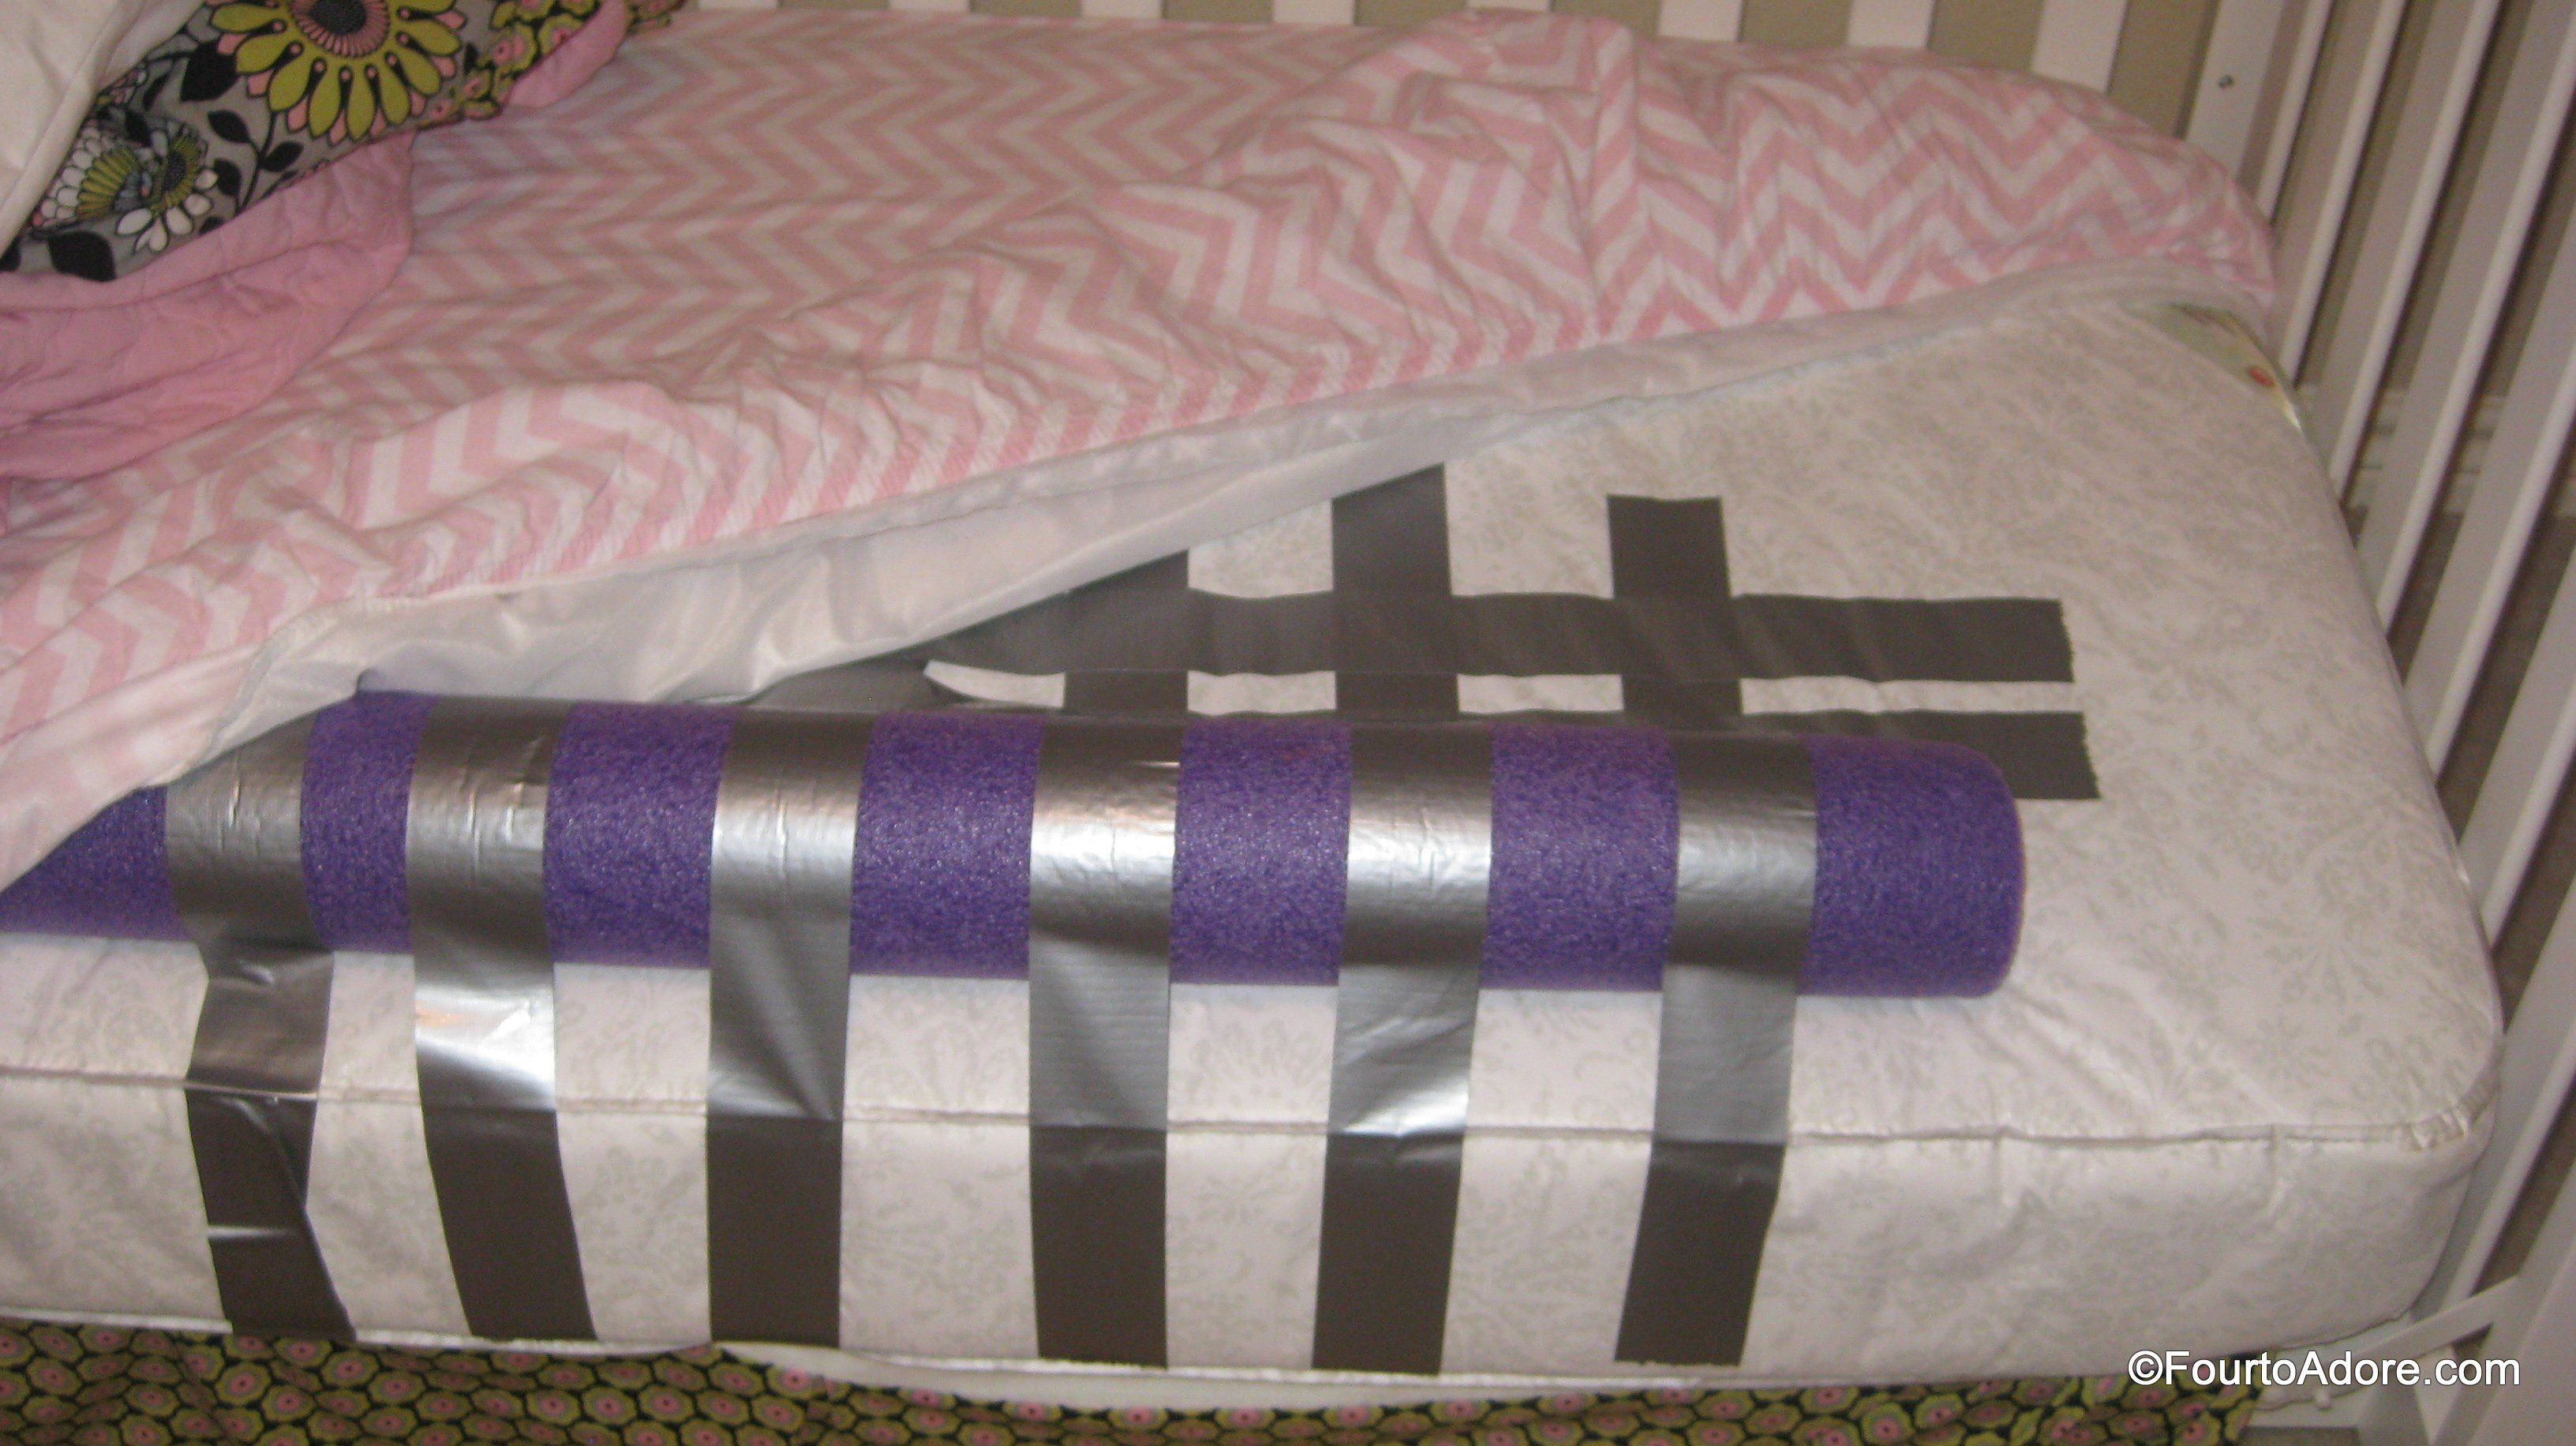 Baby crib youth bed - Duct Tape A Pool Noodle To The Mattress Of A Toddler Bed To Help Prevent Your Child From Rolling Out I Actually Have Done This Not Duct Taped And It